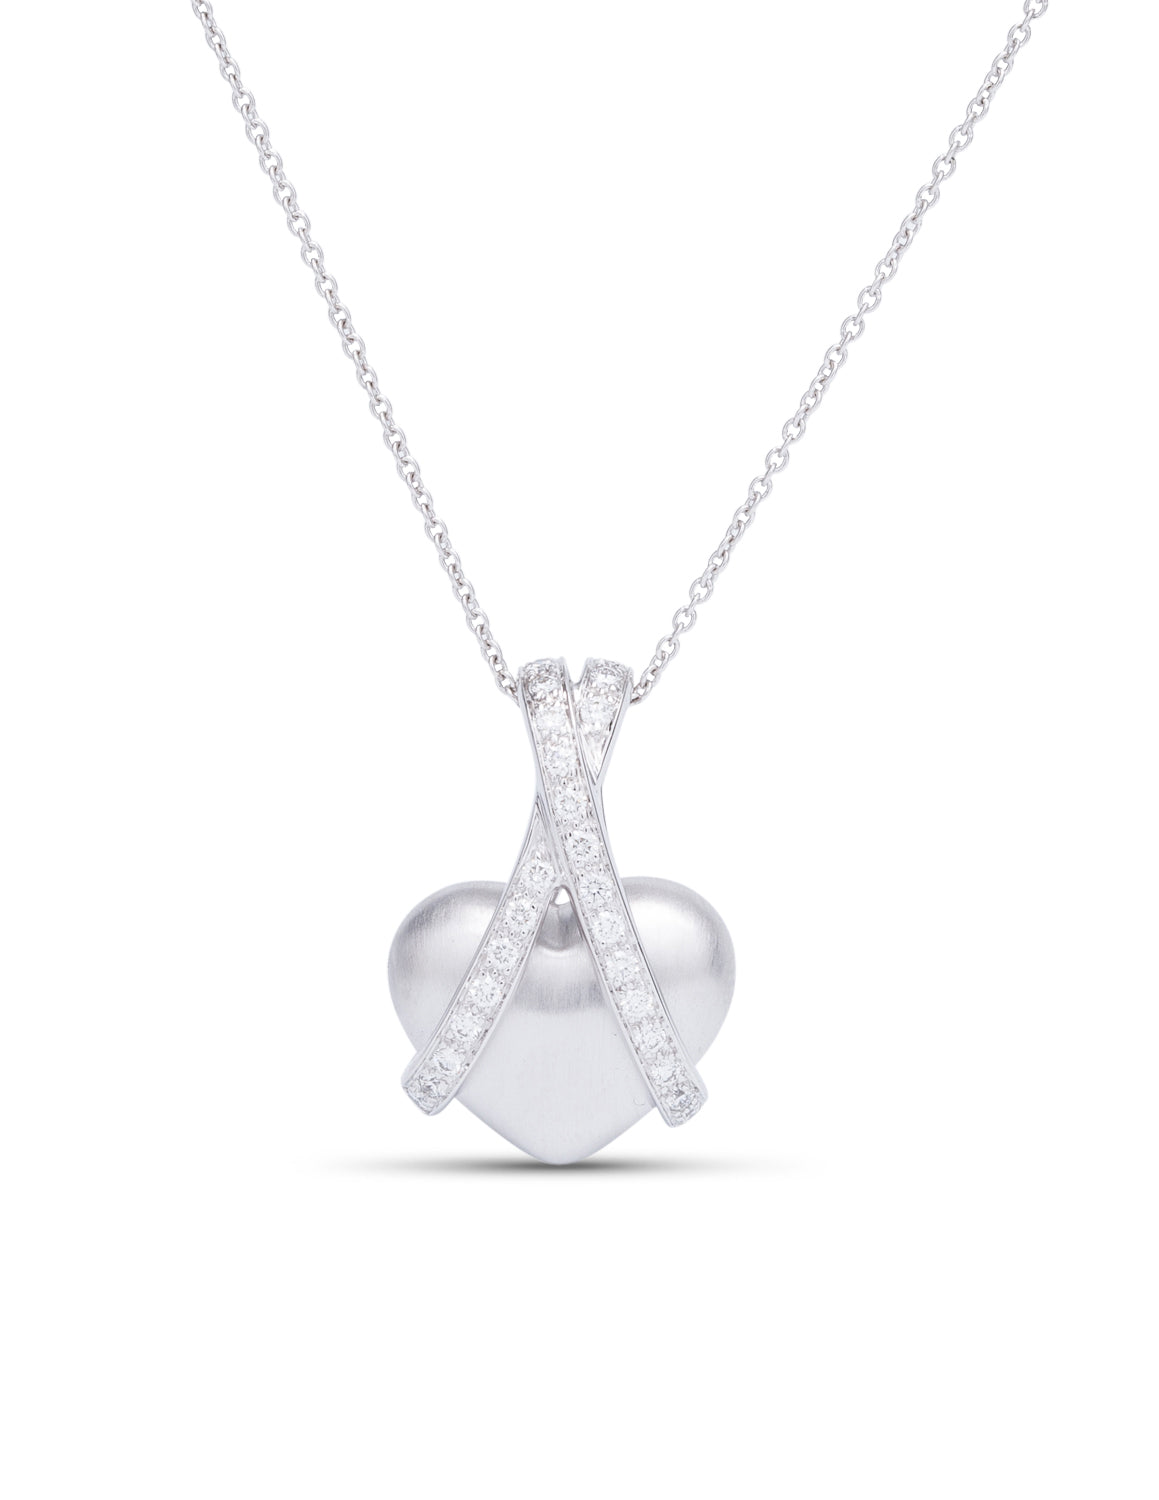 White Gold and Diamond Heart Pendant - Charles Koll Jewellers